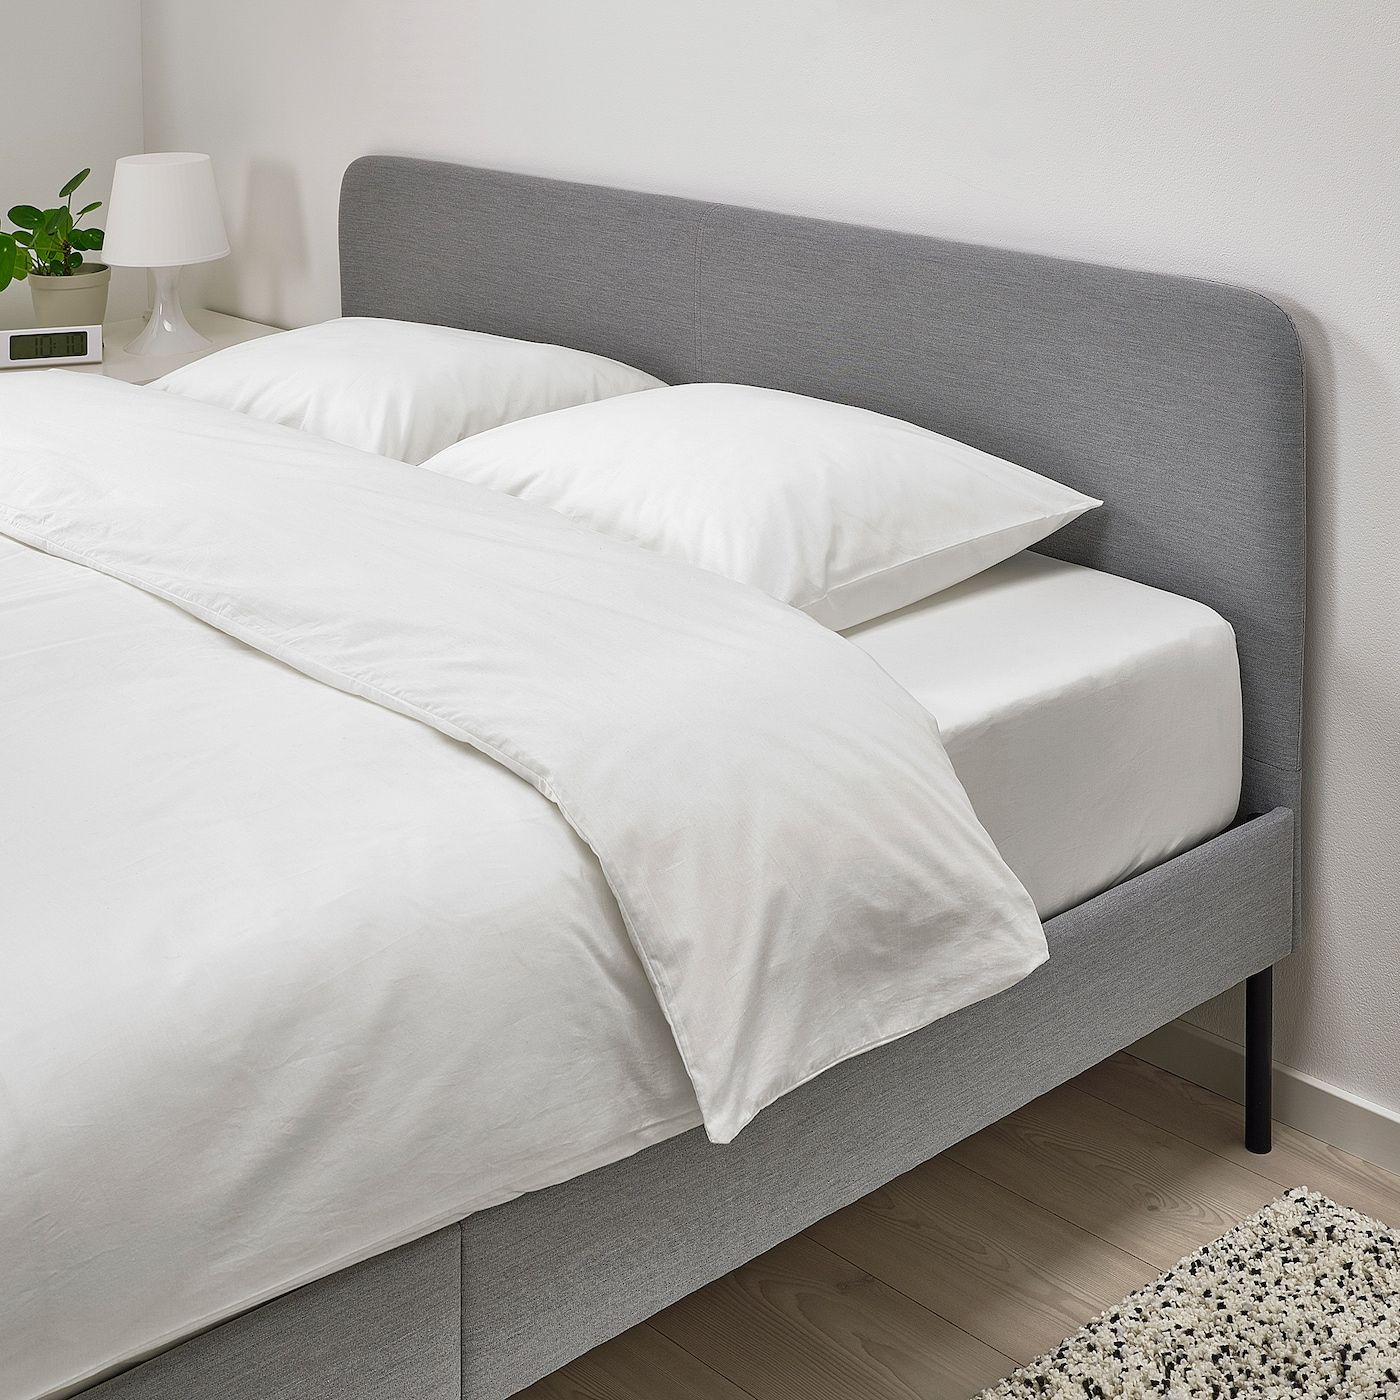 Ikea Slattum Knisa Light Gray Upholstered Bed Frame In 2020